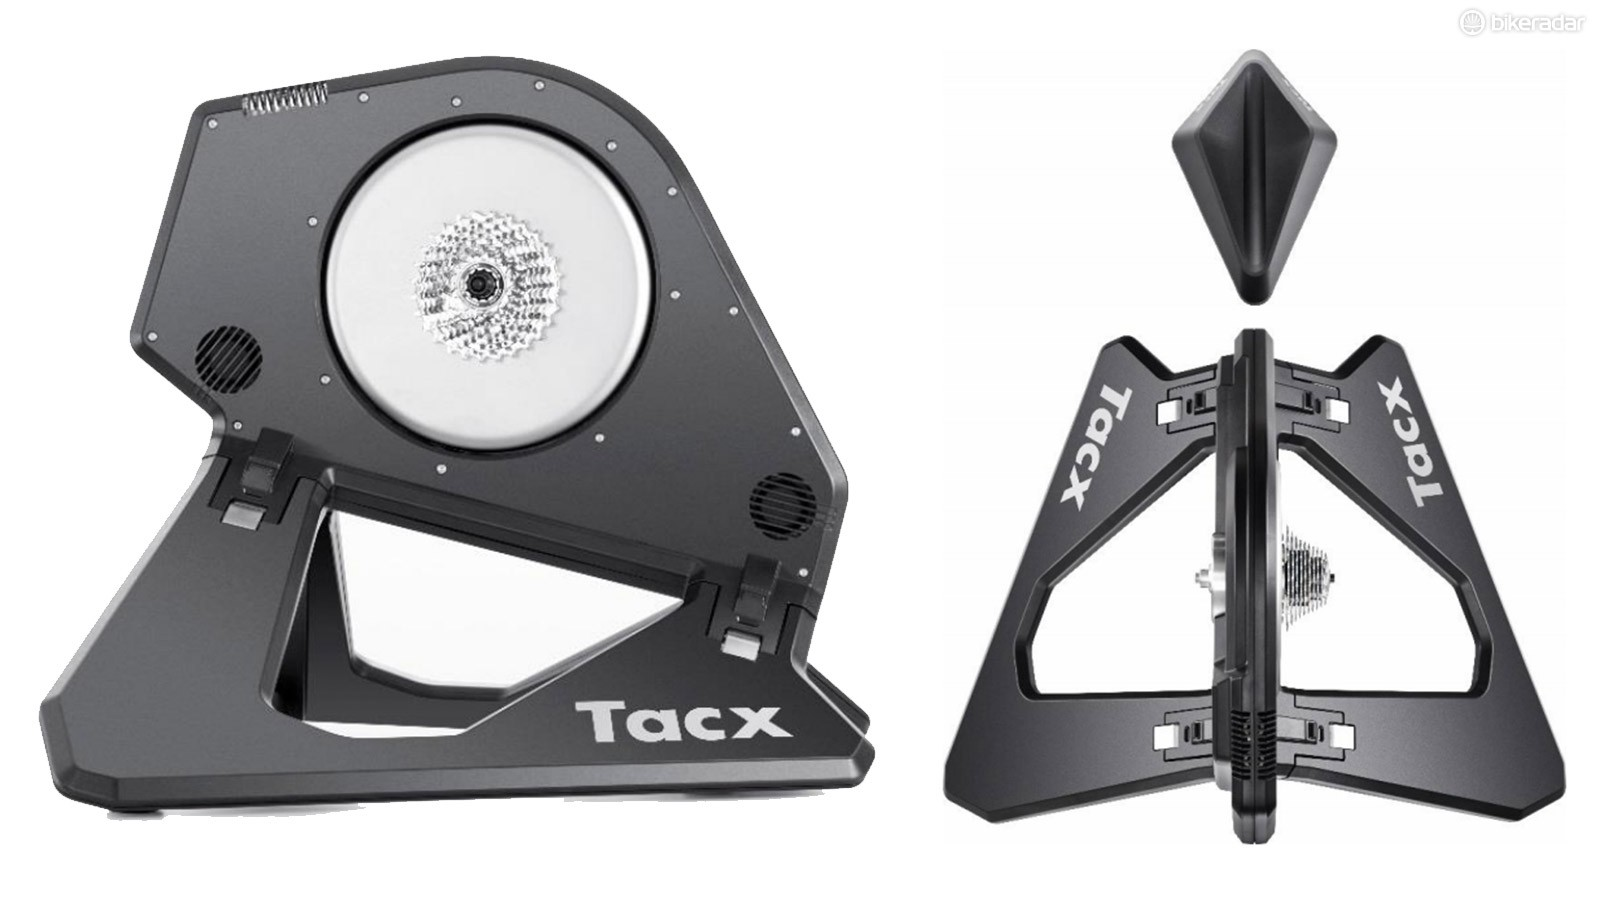 The new Tacx NEO Smart turbo trainer supposedly has futuristic guts and capabilities to match the impressive looking exterior